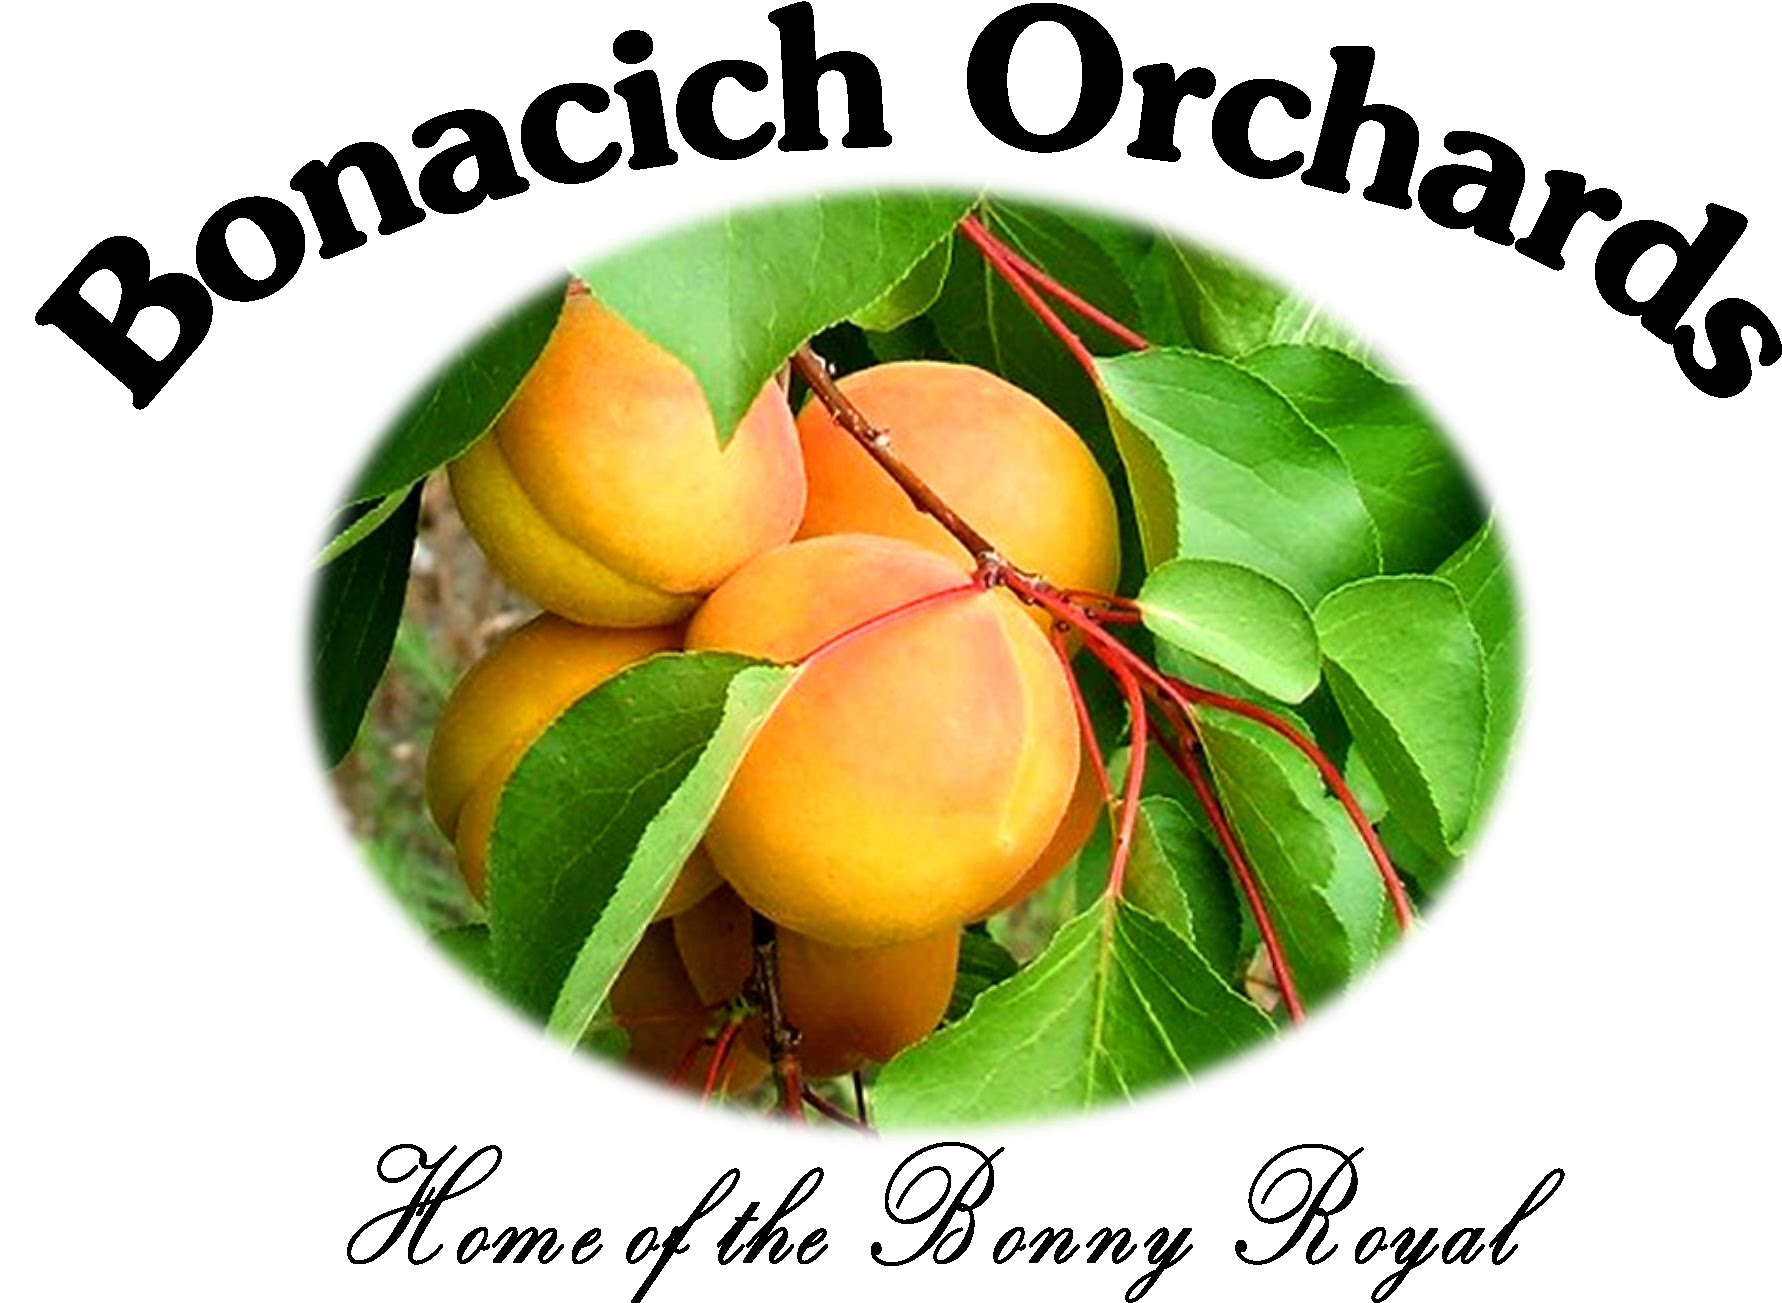 Bonacich Orchards